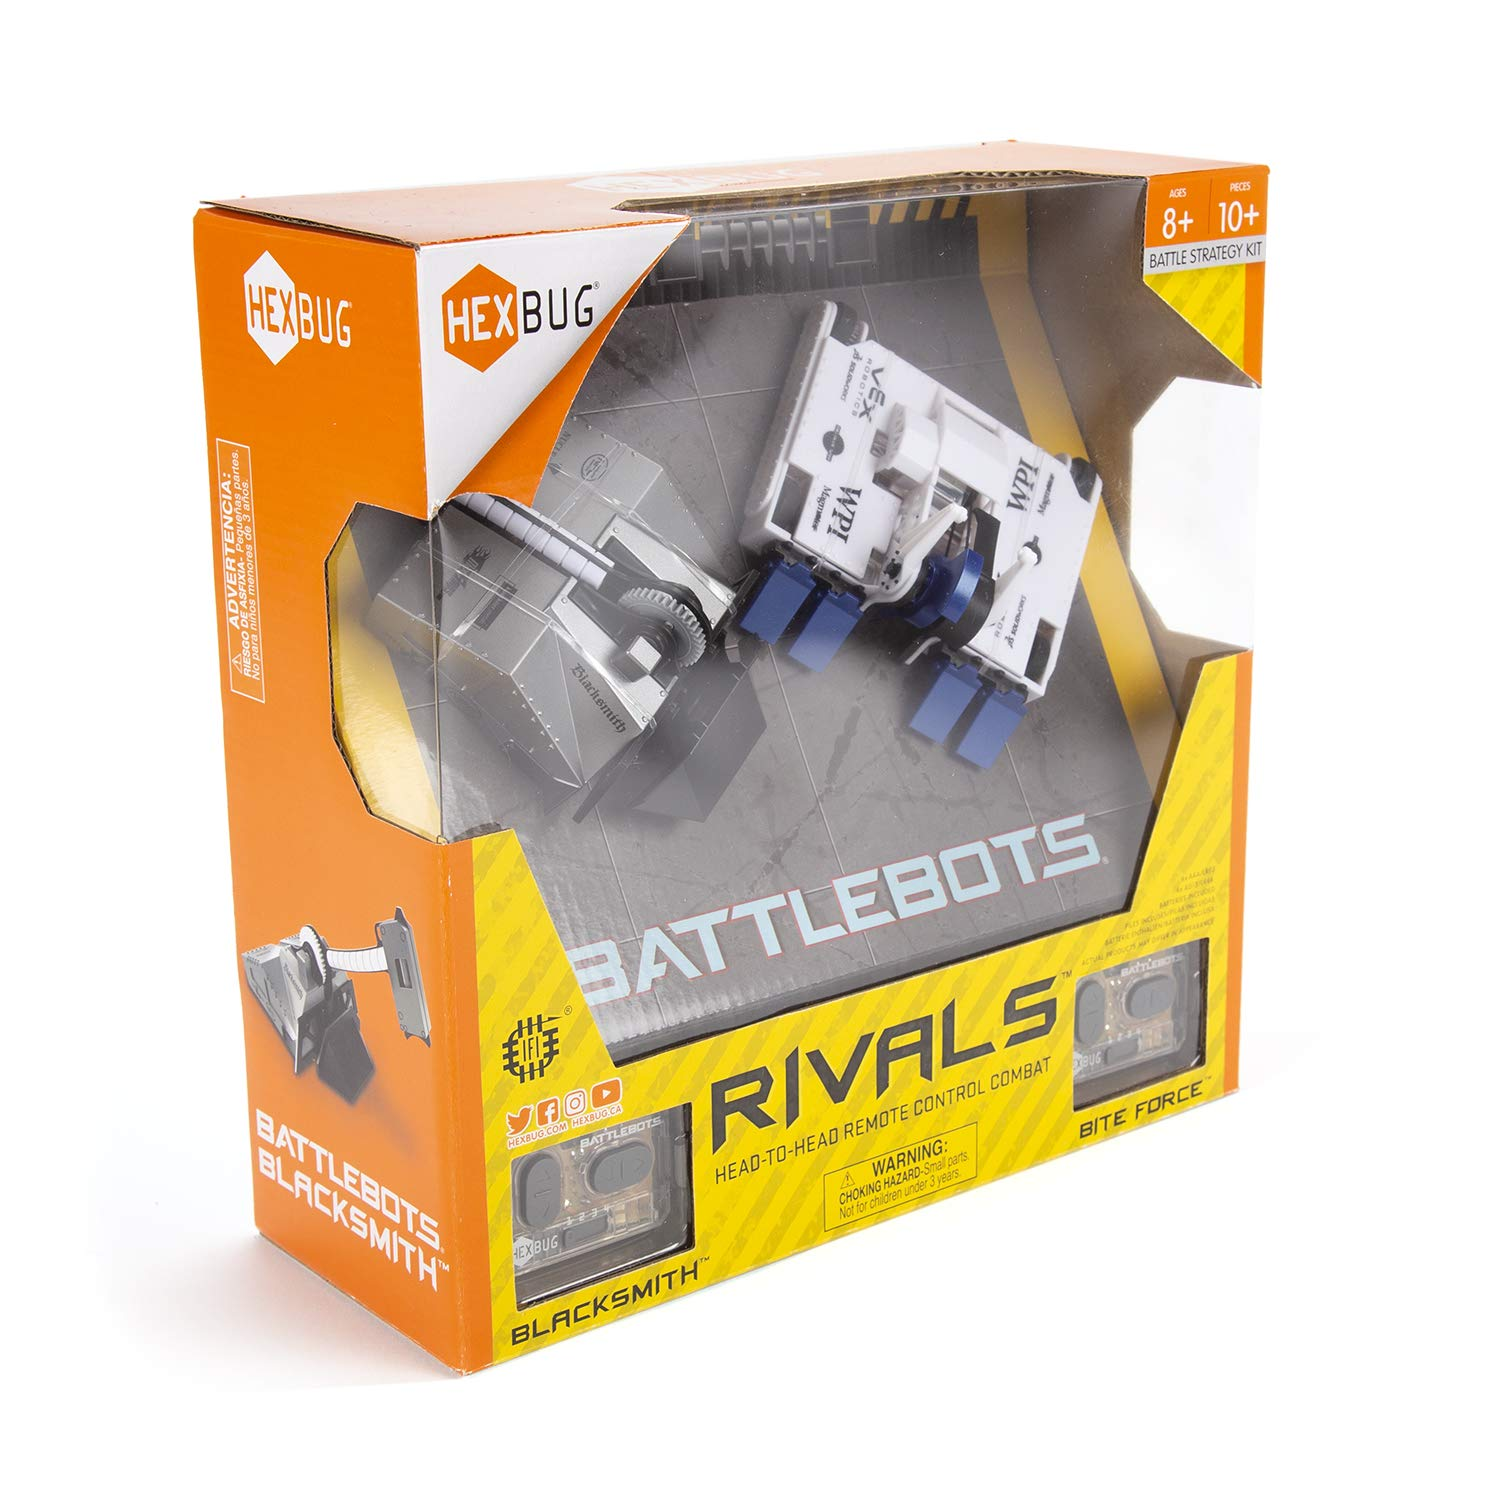 HEXBUG BattleBots Rivals 4.0 (Blacksmith and Biteforce) Toys for Kids, Fun Battle Bot Hex Bugs Black Smith and Bite Force by HEXBUG (Image #5)